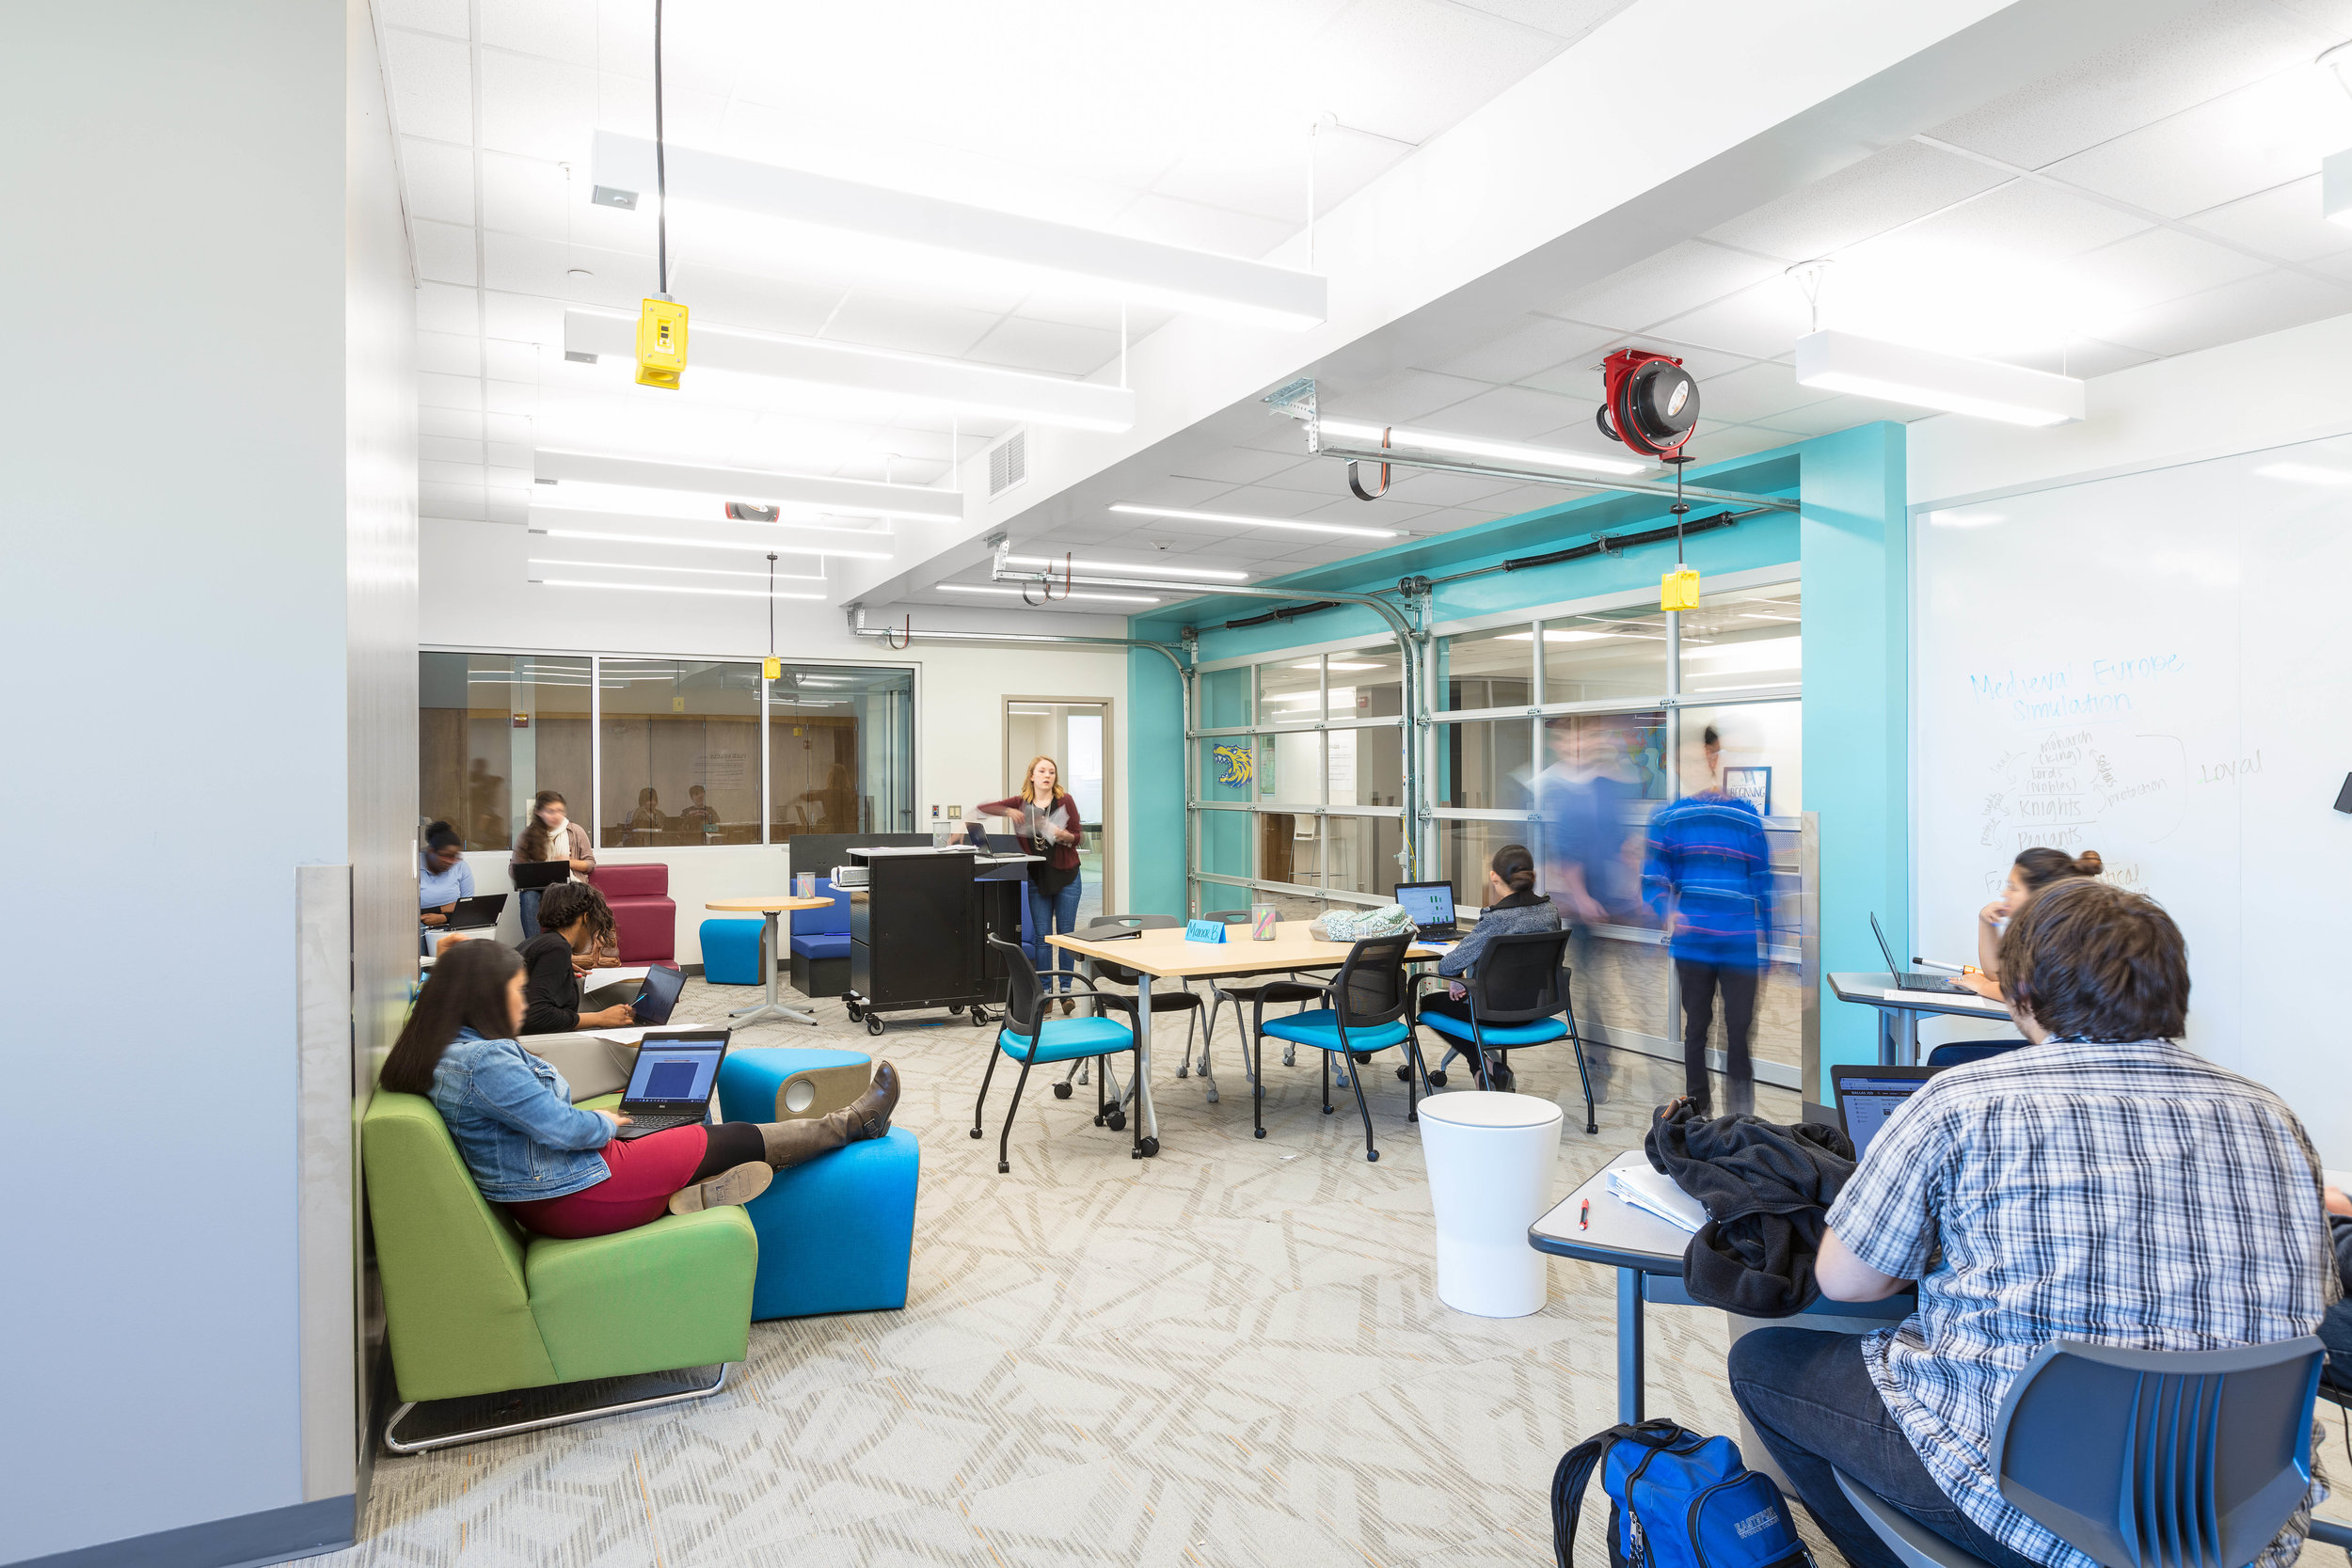 Personalized Learning, Personalized Place    Funds: ASID Foundation's Transform Grant, Herman Miller, and HKS Inc.   Collaborators: Dallas Independent School District, Herman Miller, Sally Augustine   Location: Dallas, TX